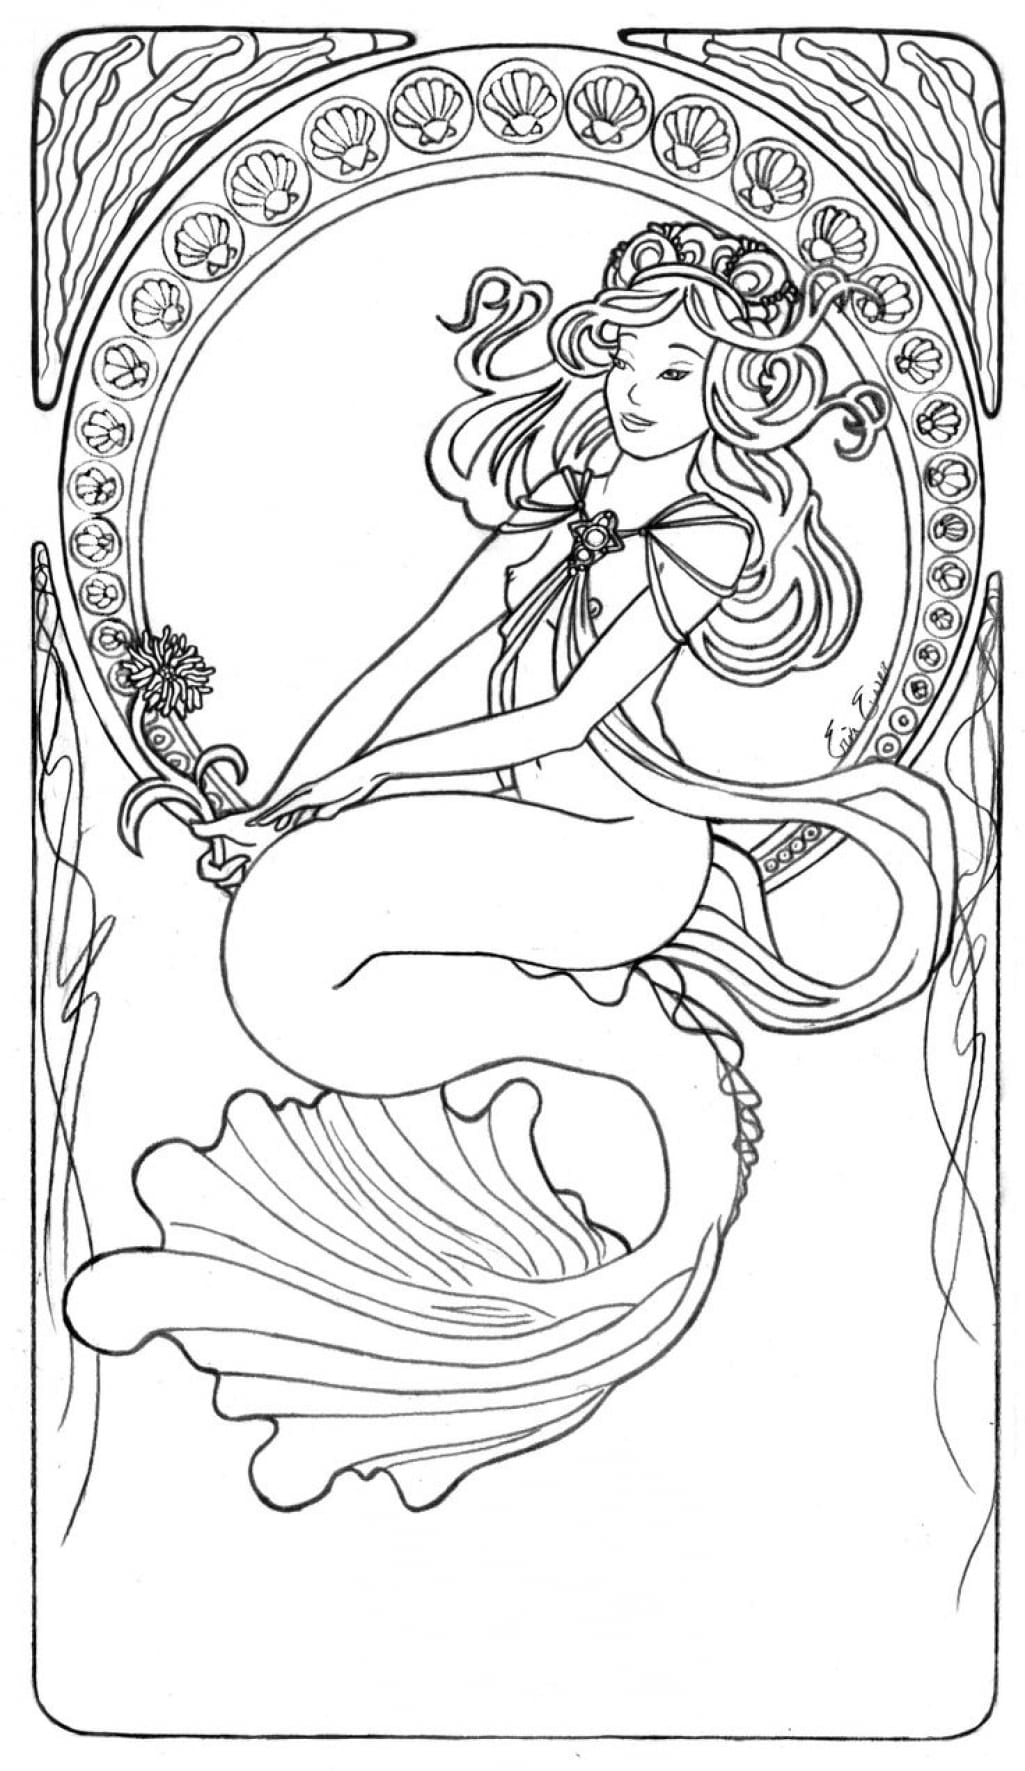 On Art Nouveau Coloring Pages 5a4f80c900740